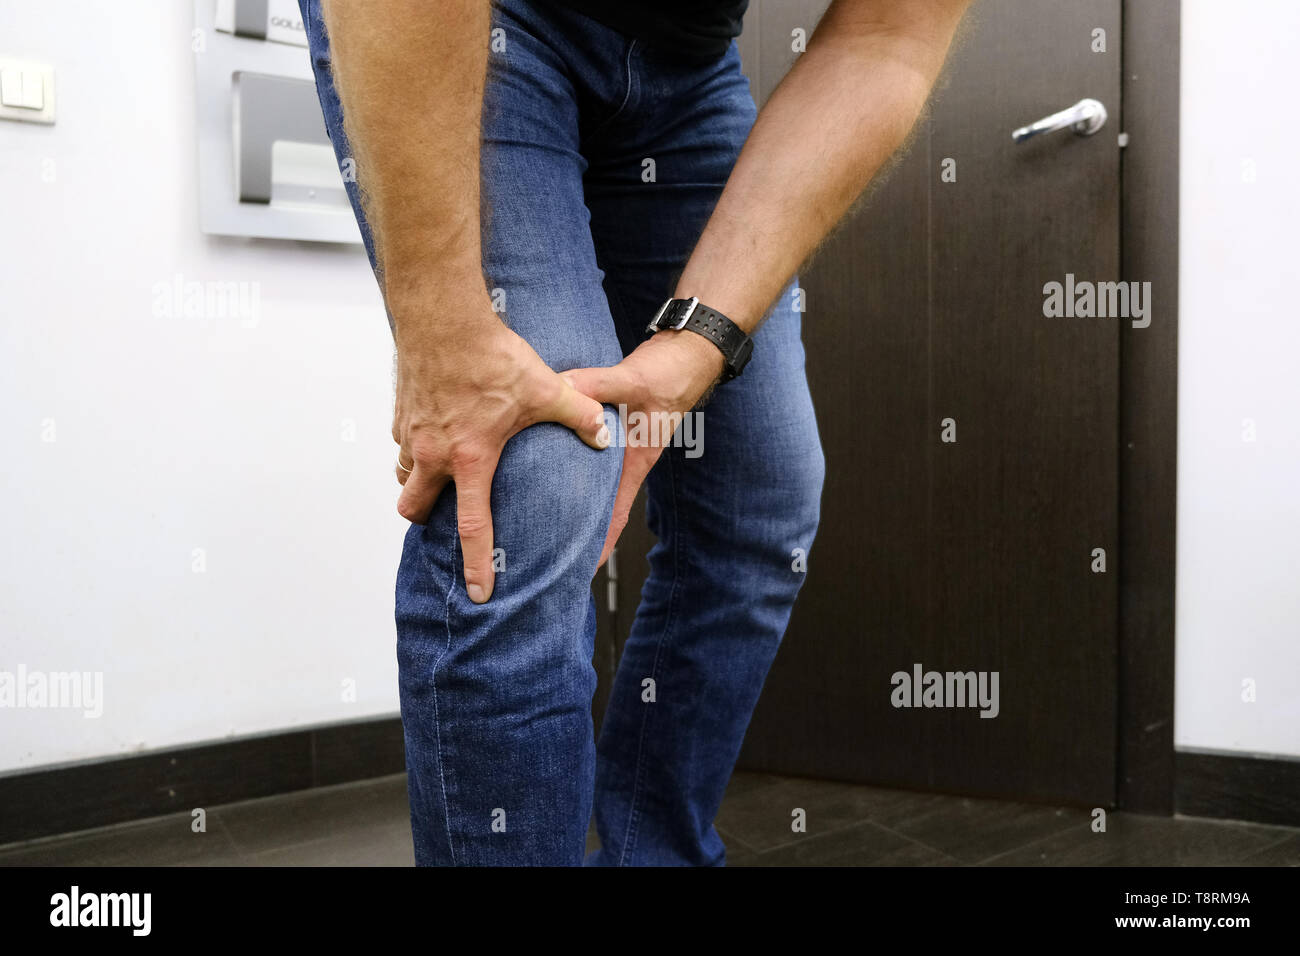 The young man is suffering from knee pain. Sports injury, dislocation, sprain. Inflamed knee ligaments. - Stock Image